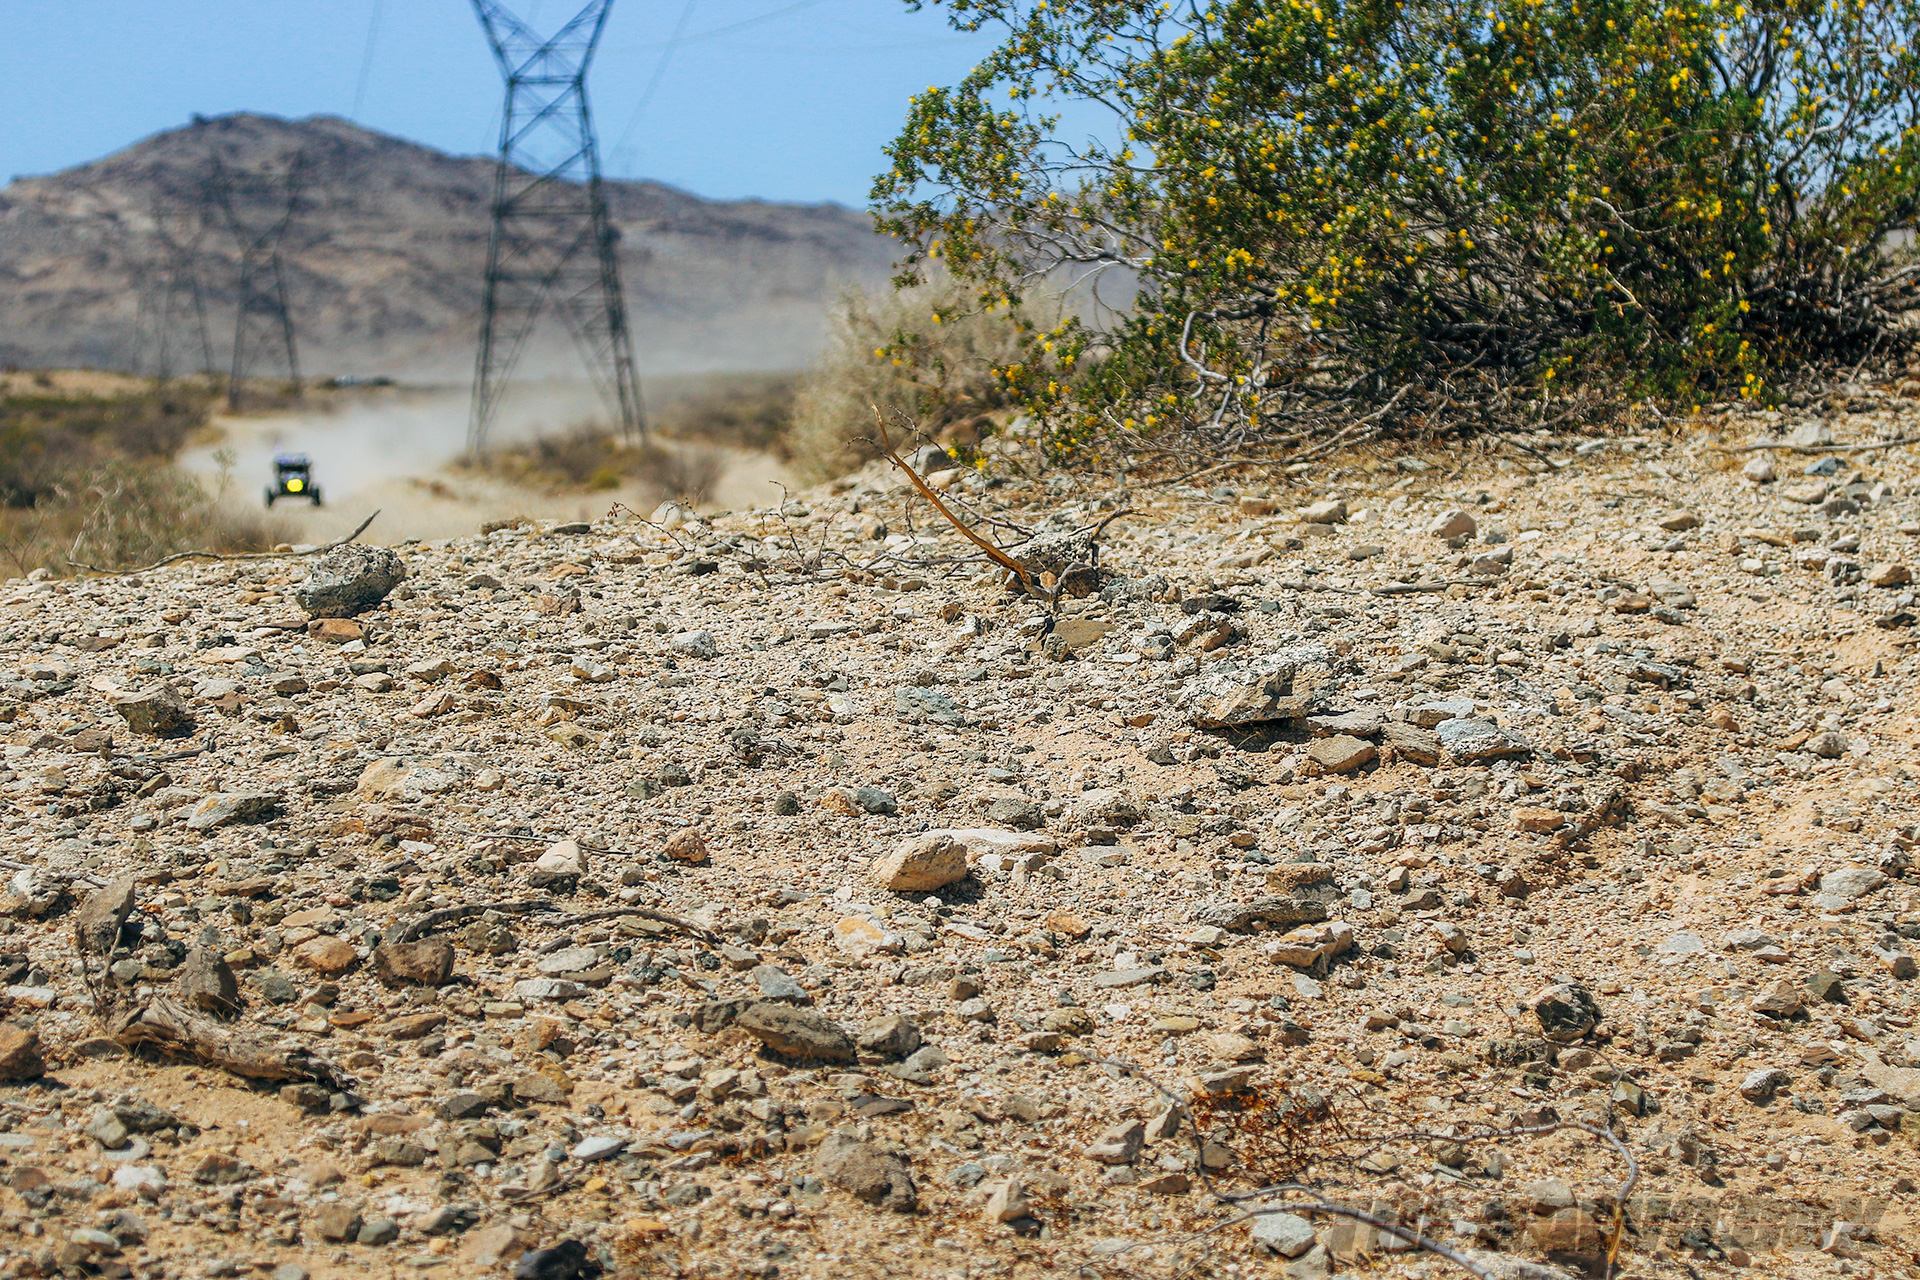 Close up of a dirt road while a rock racer speeds towards the camera in the distance